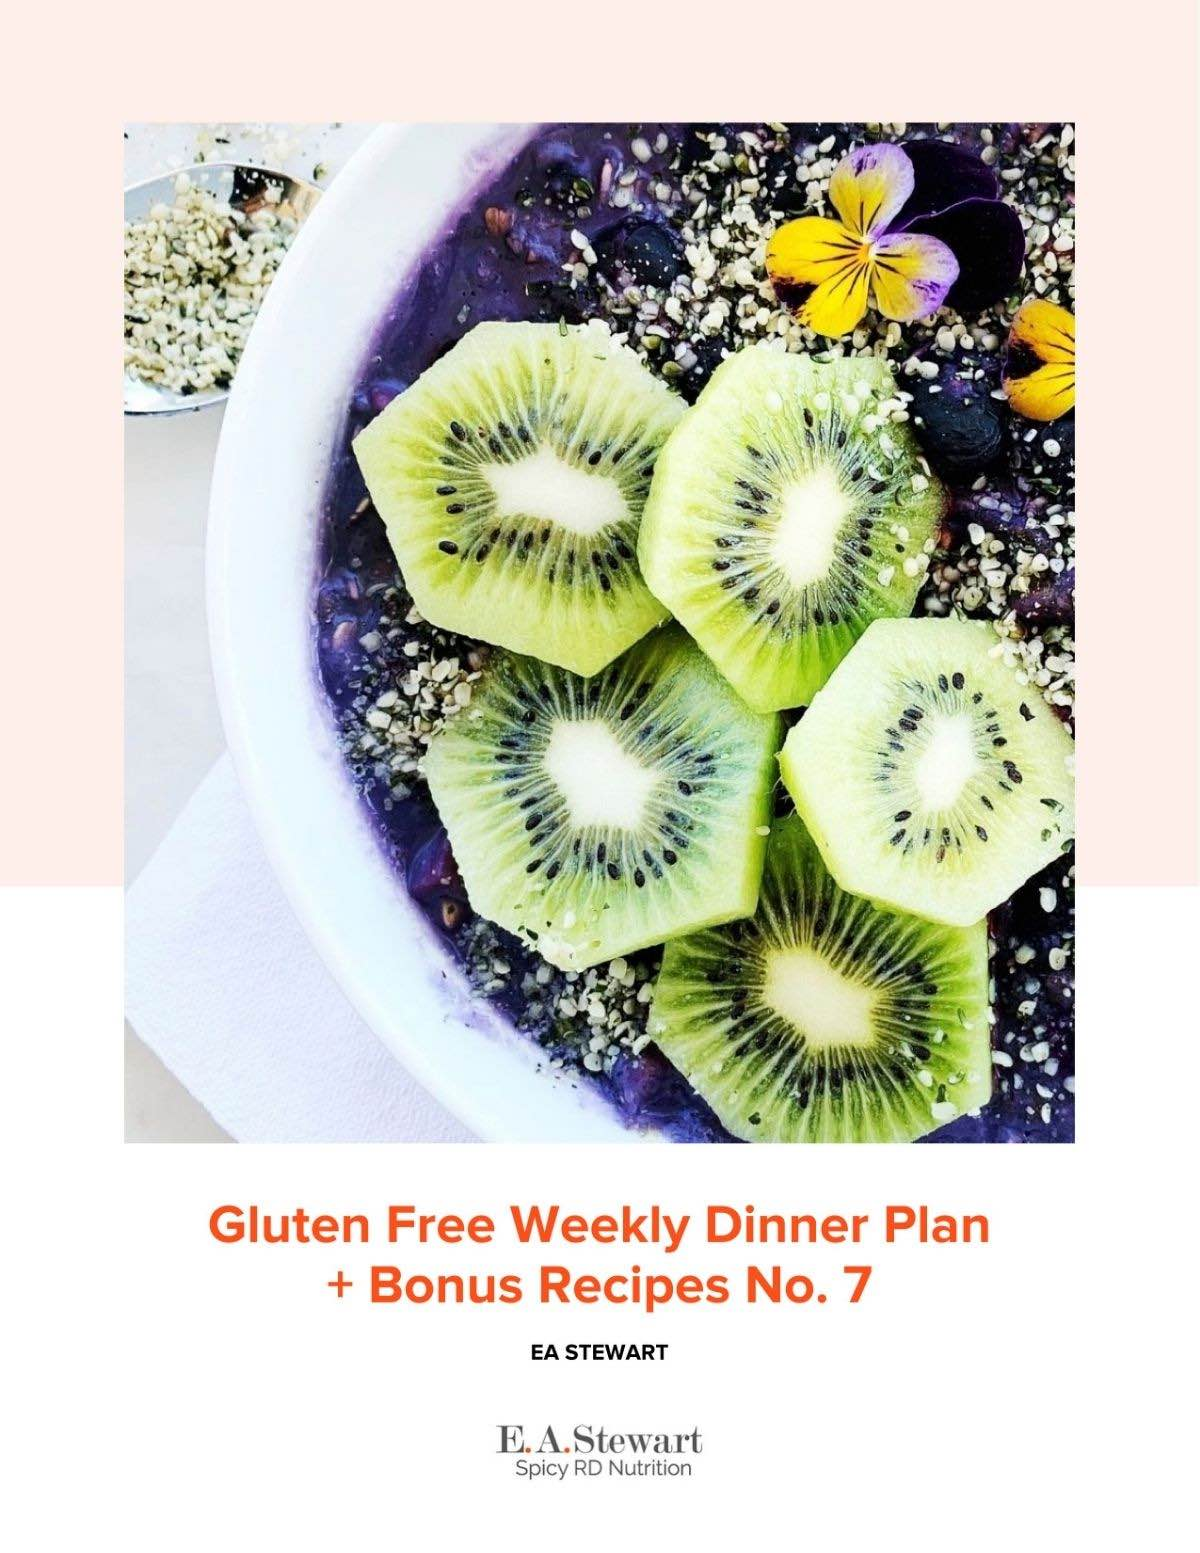 Weekly meal plan no 7 cover page with image of blueberry smoothie bowl.